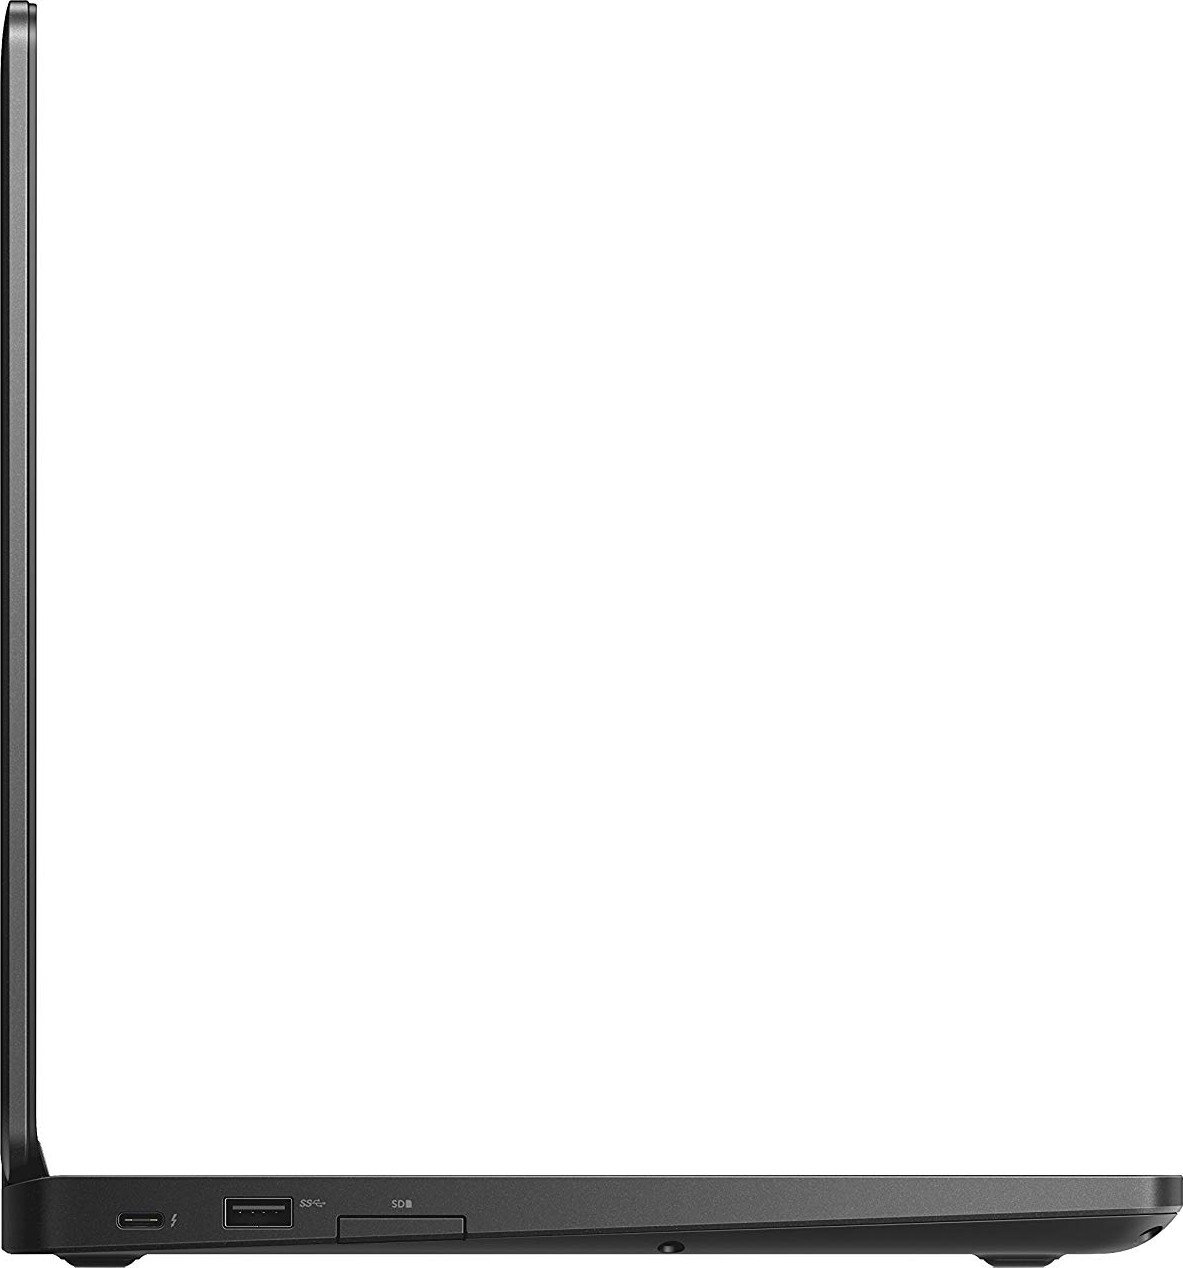 Dell Latitude E5490 i7 8650U 1 90Gz, Integrated UHD Graphics 620, 8G 1 X 8G  DDR4 Memory, 2 5 500G